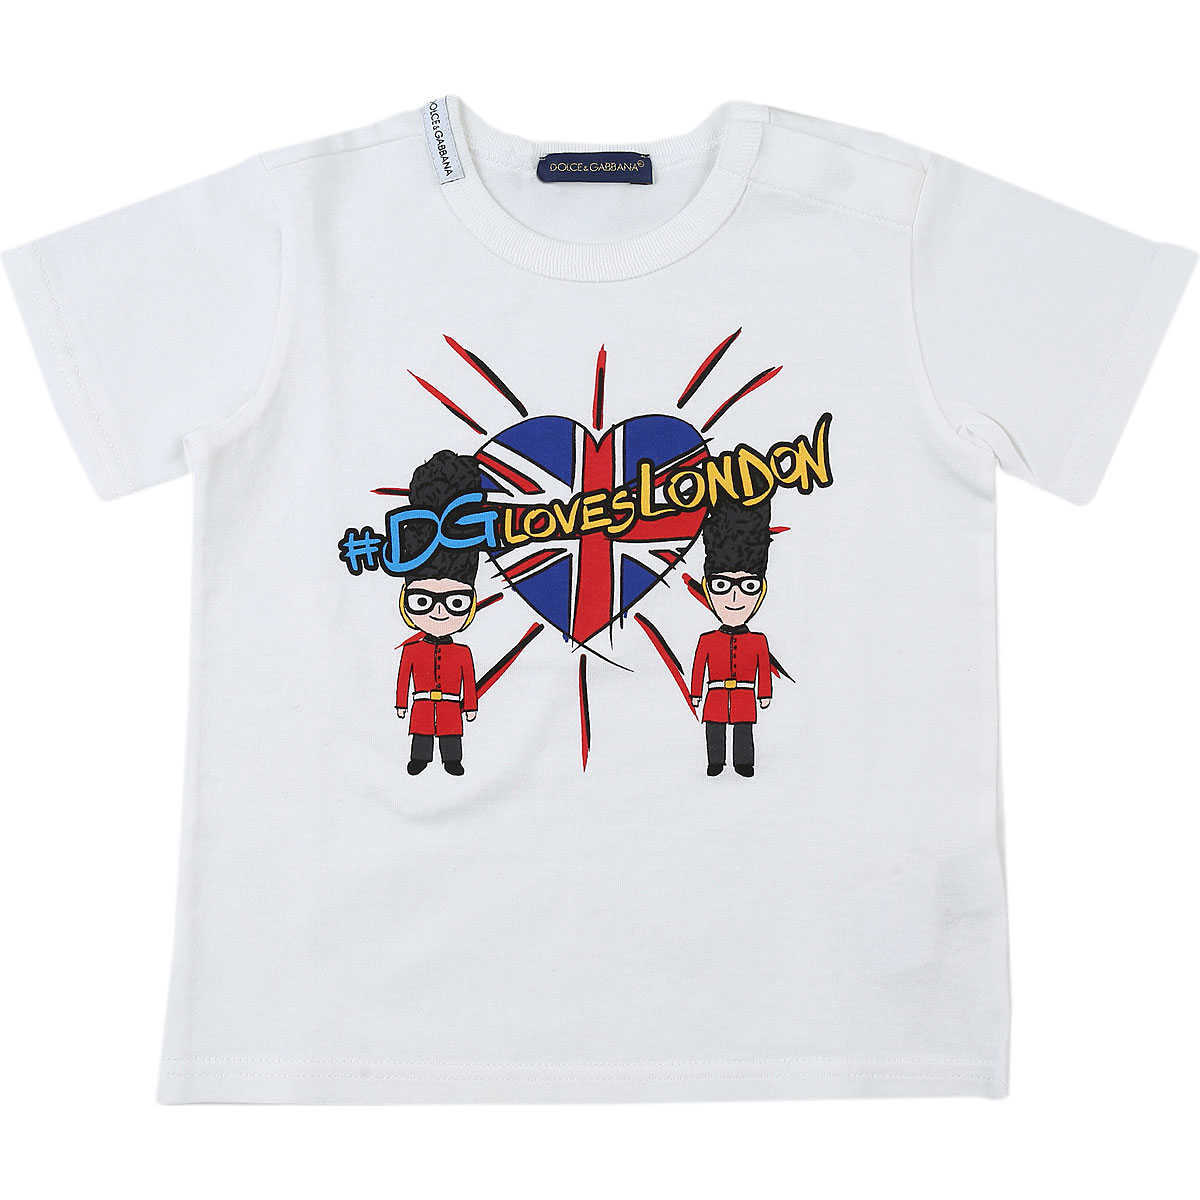 Dolce & Gabbana Baby T-Shirt for Boys On Sale in Outlet White - GOOFASH - Mens T-SHIRTS